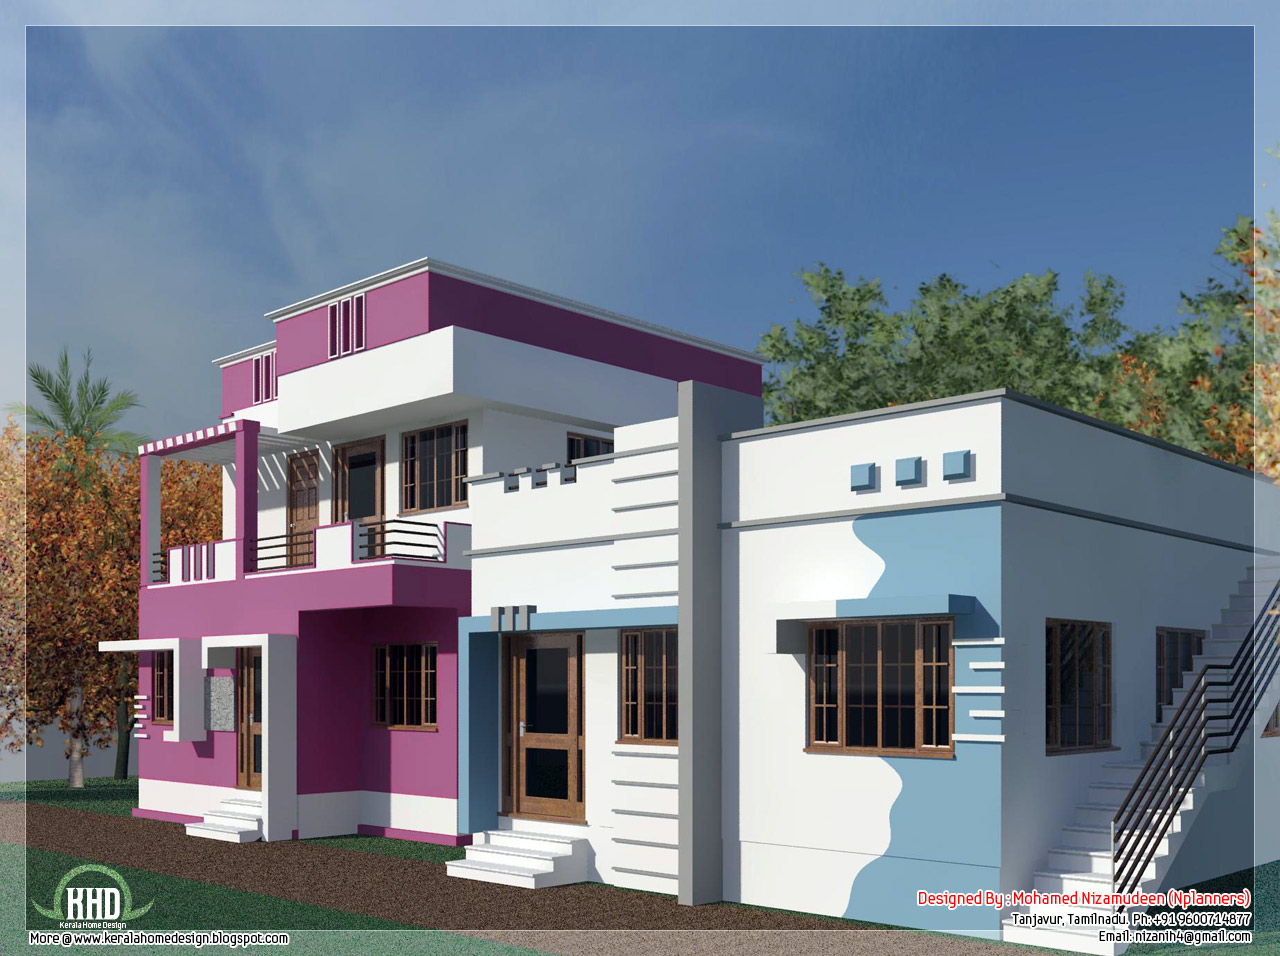 Tamilnadu model home desgin in 3000 a taste in for Tamilnadu house designs photos